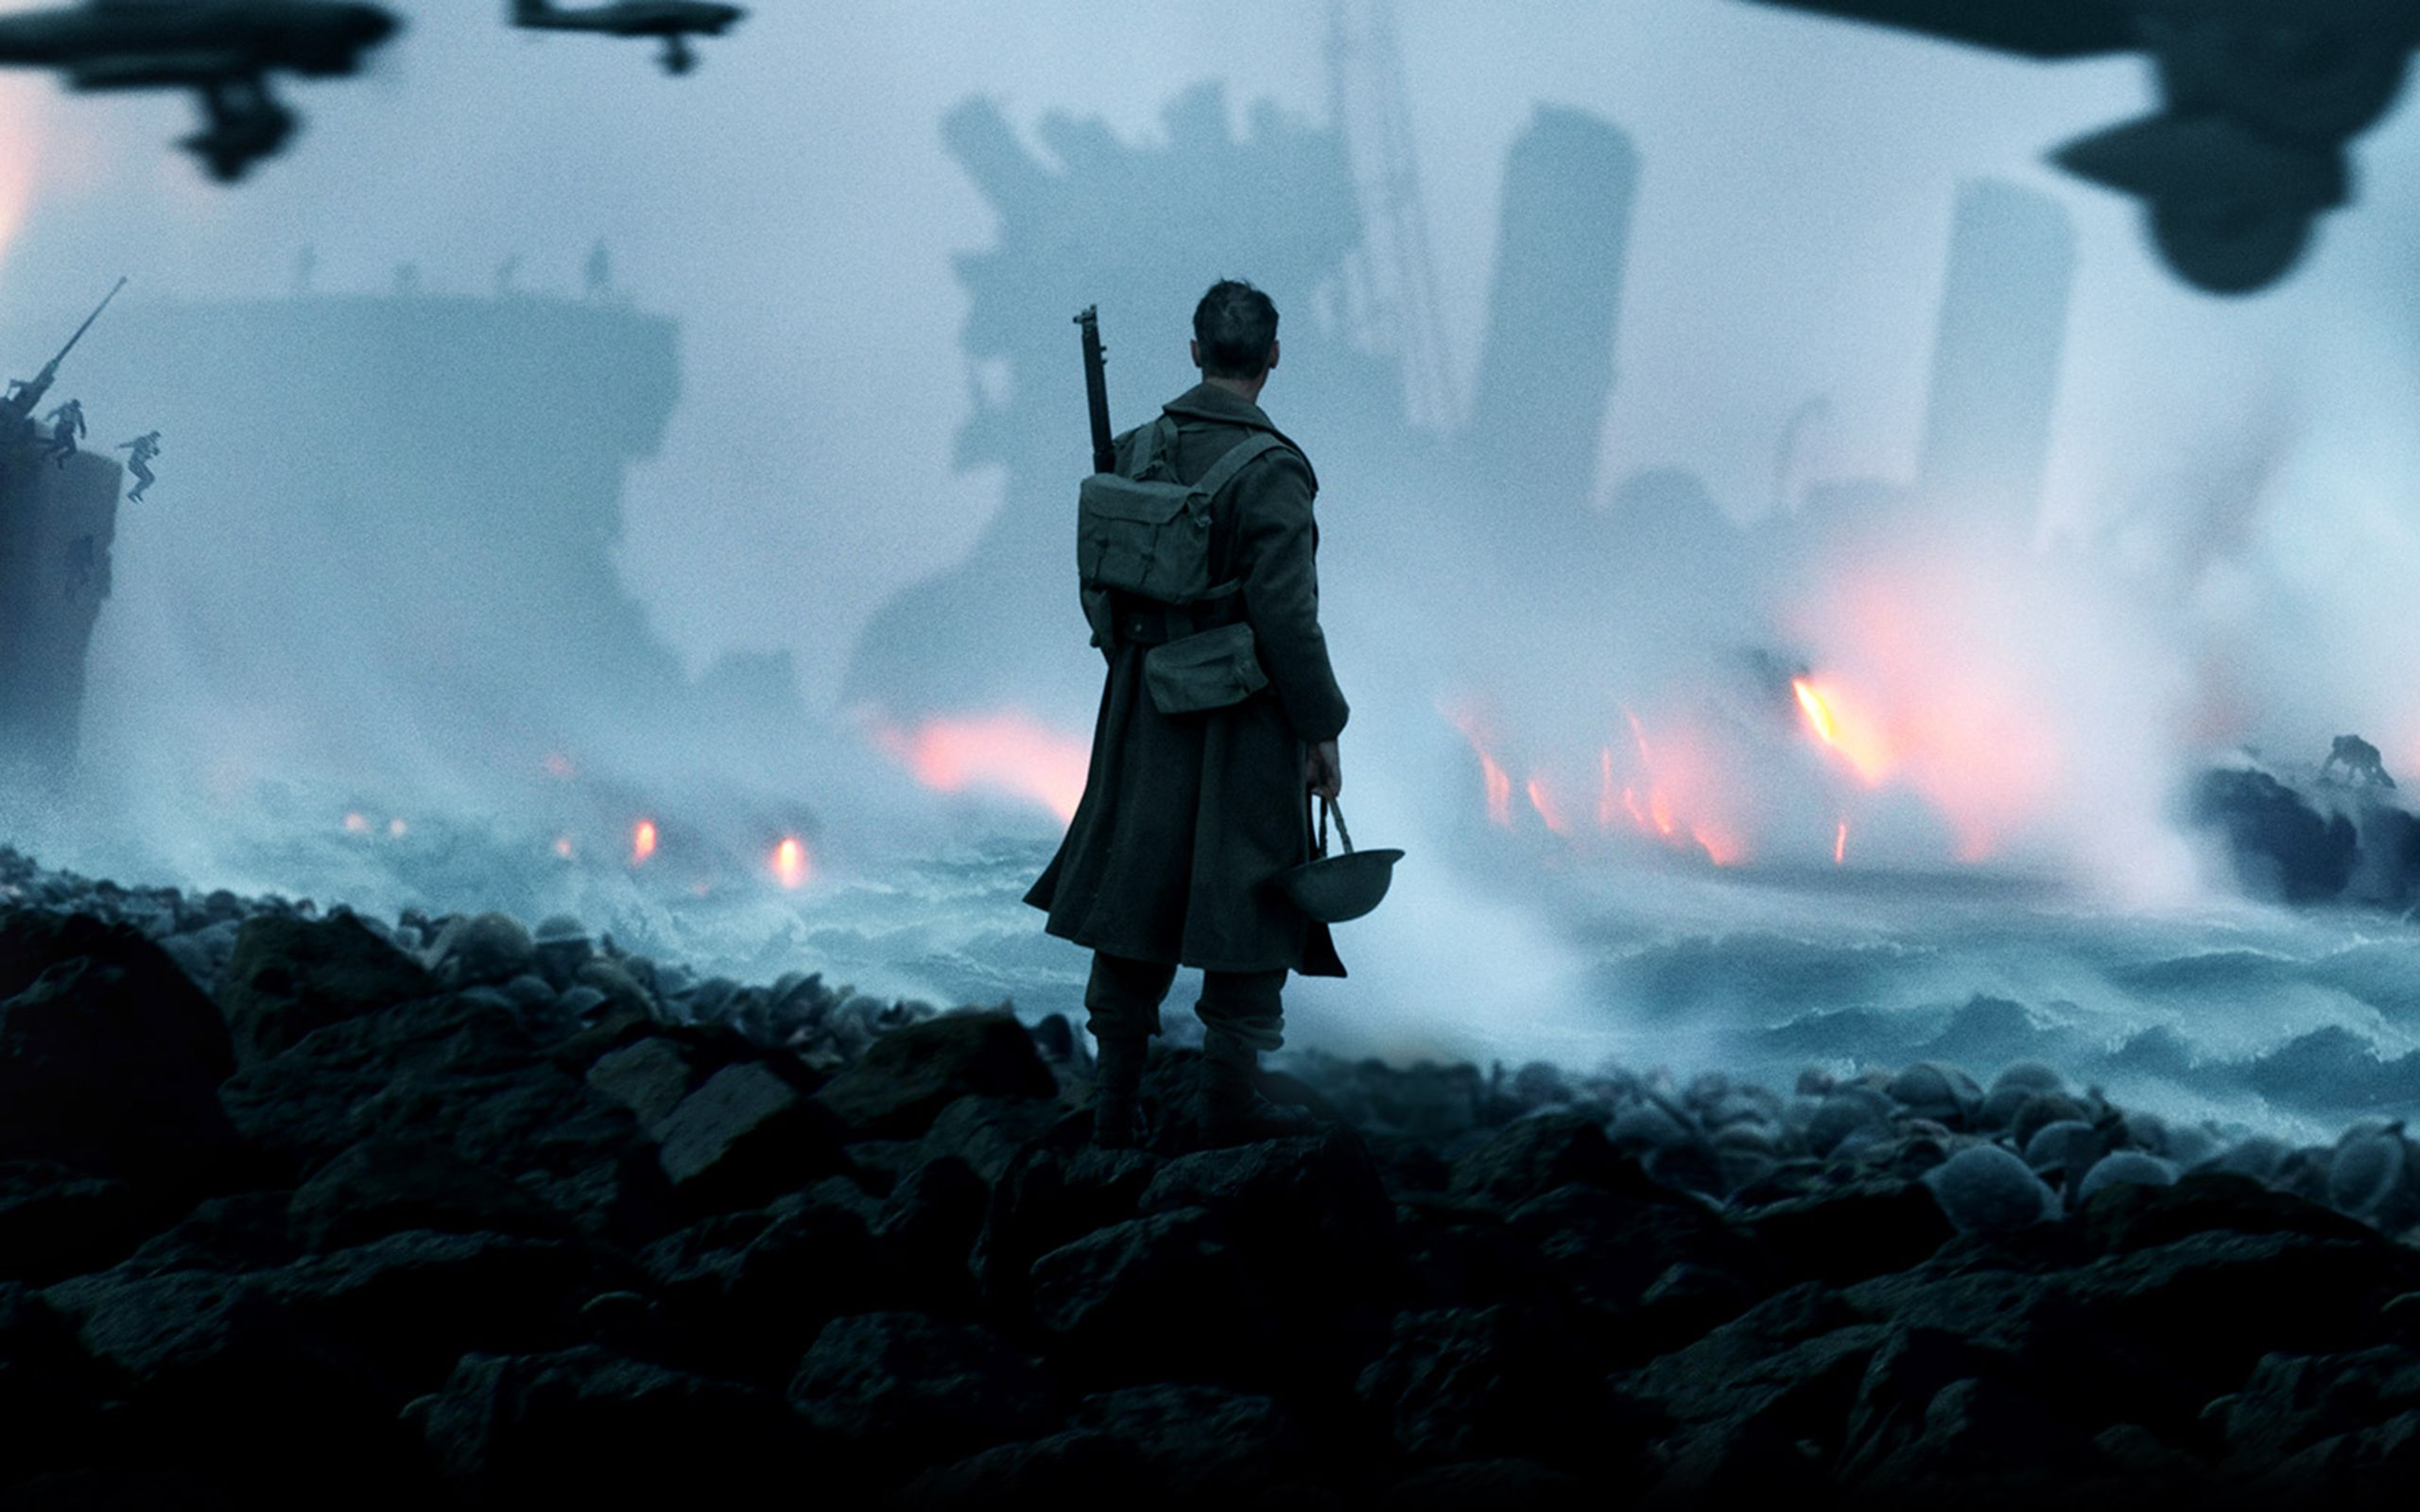 dunkirk movie hd wallpapers 5 movies wallpapers pinterest